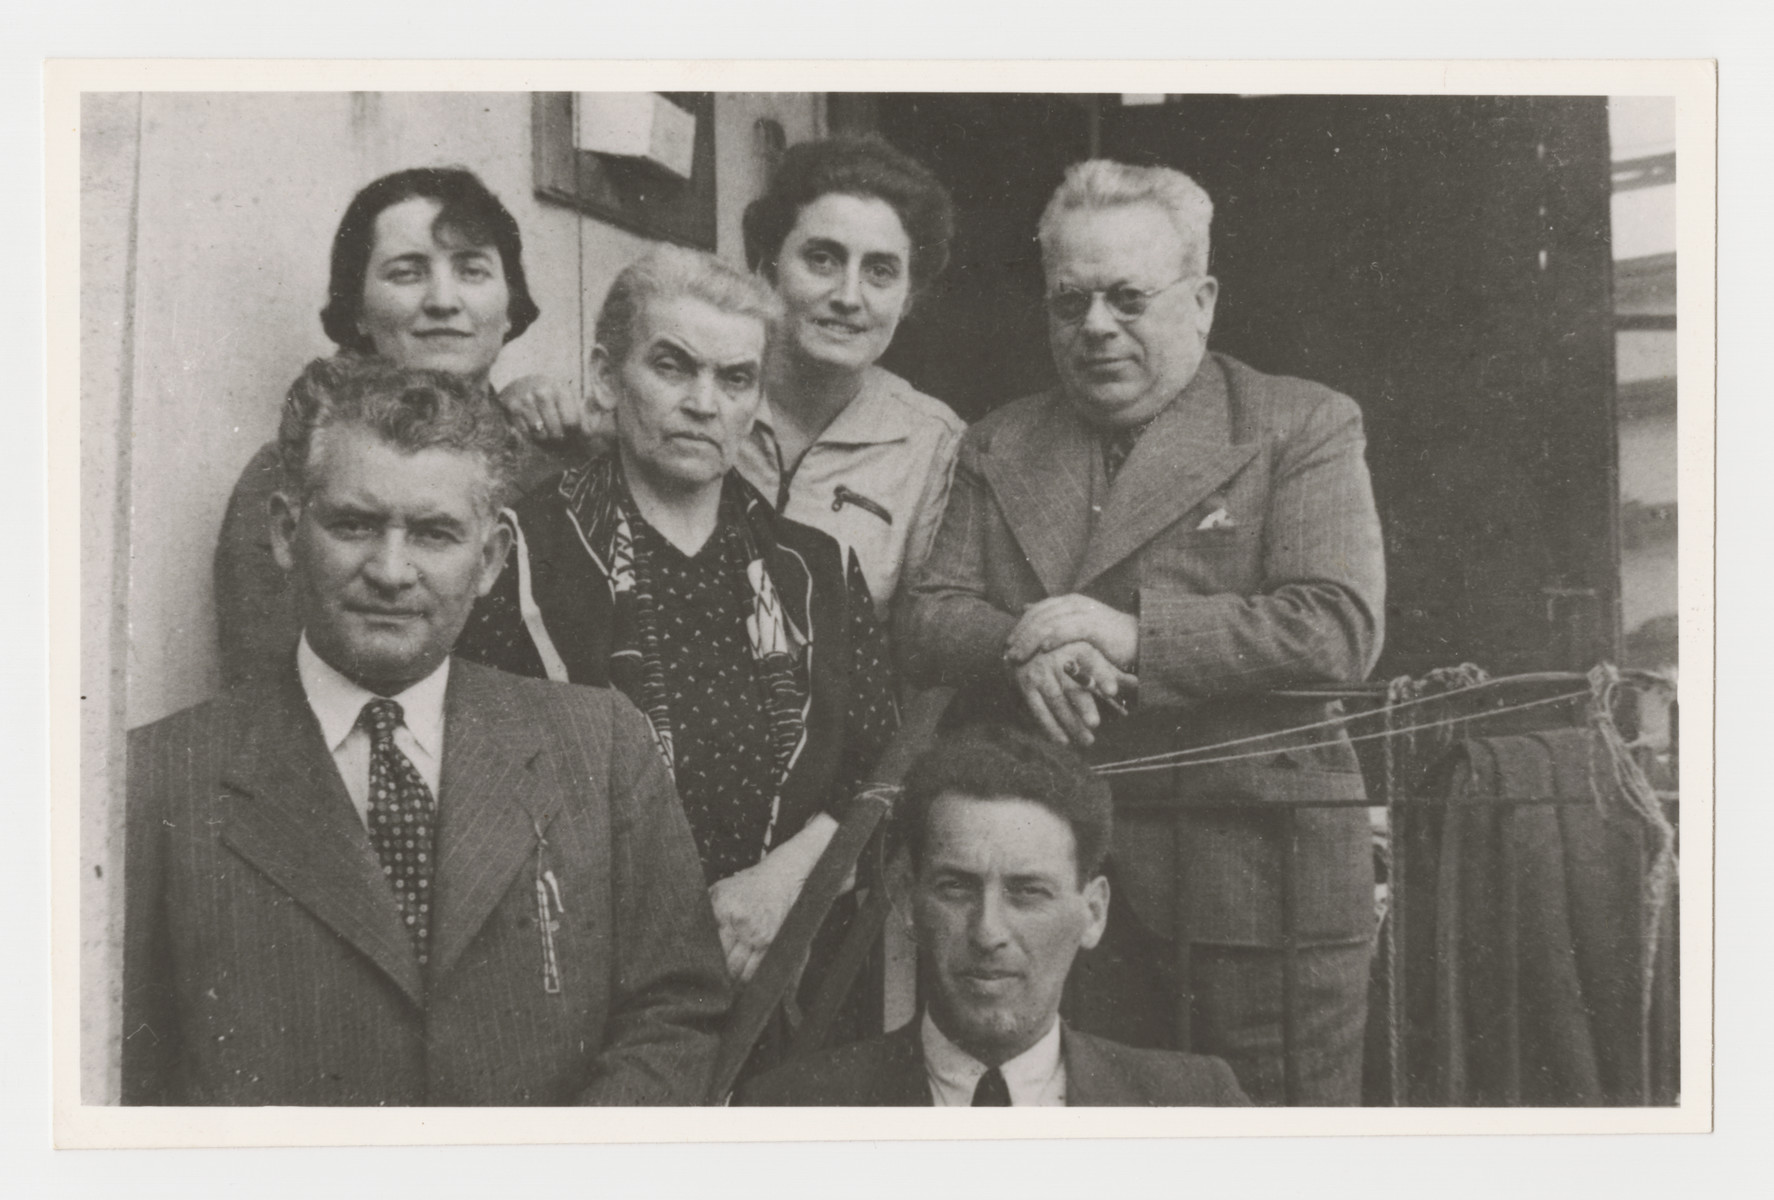 Portrait of part of the Brecher family taken soon after the Anschluss.  Pictured front row: Norbert Brecher and Ernst Brecher. Back: Sidonie Brecher, Rudolfine Rosenbaum Brecher, Klara Taussig Brecher and Leopold Blau (a cousin).